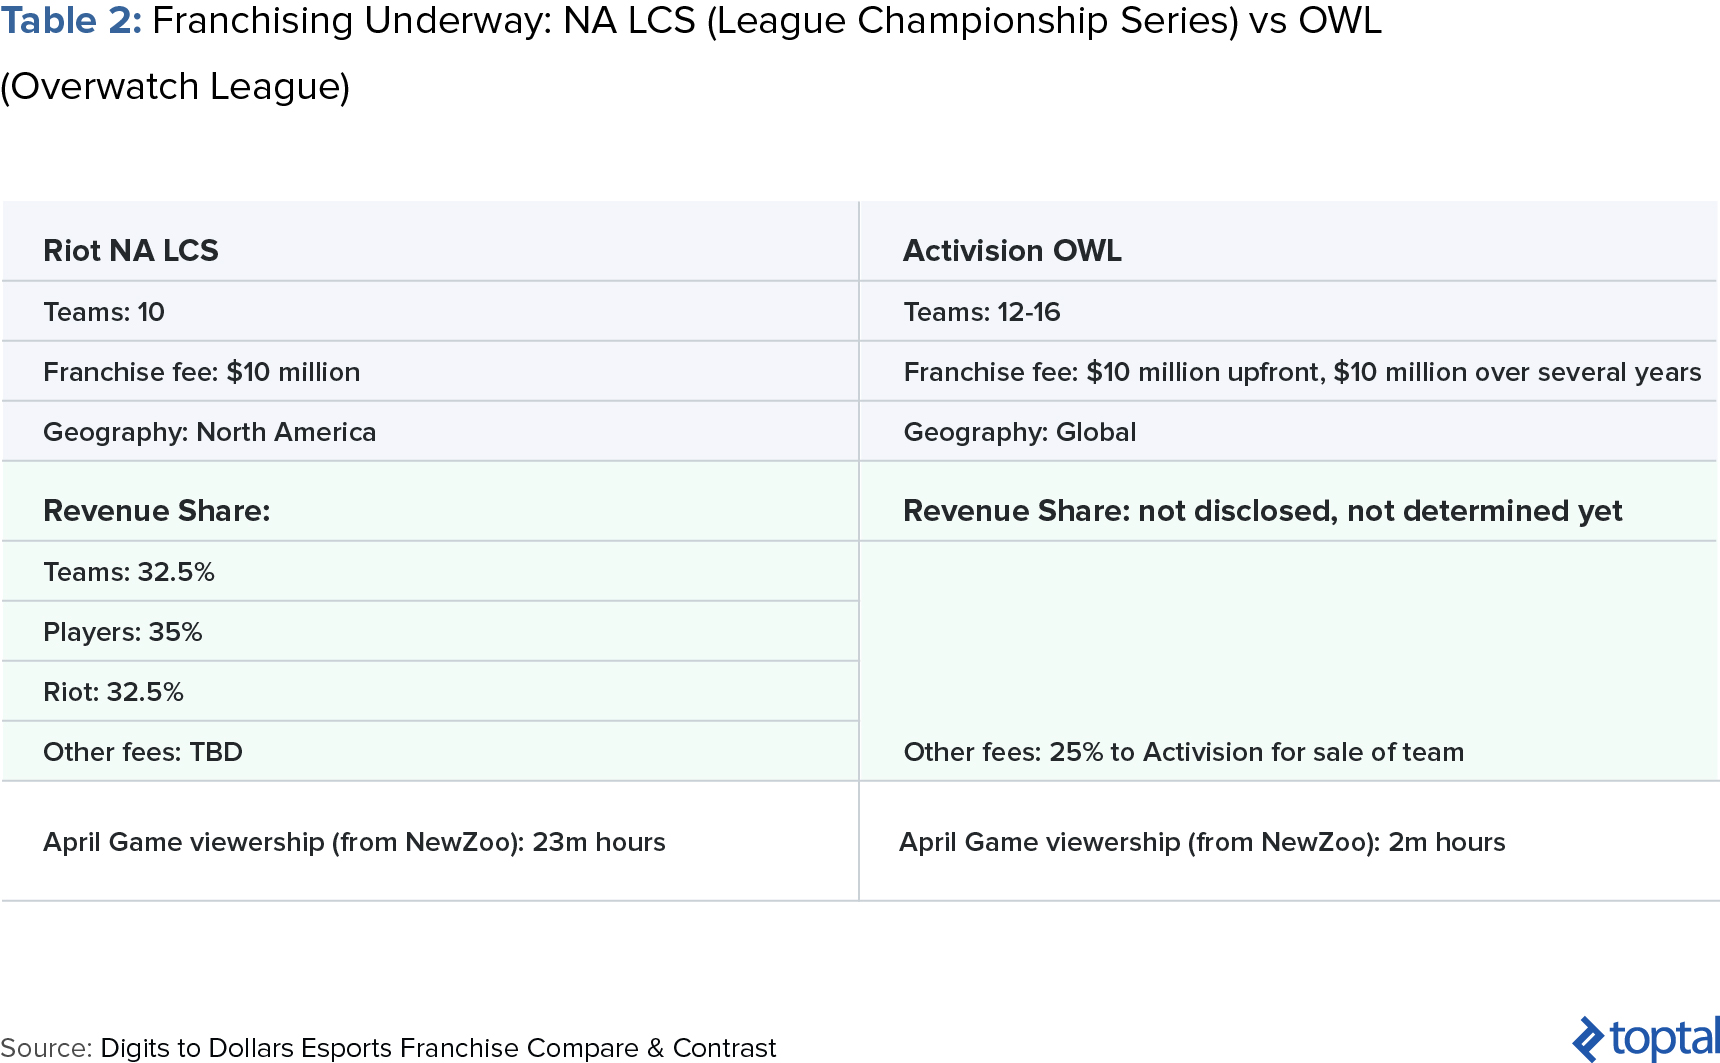 Table 2: Franchising Underway: NA LCS (League Championship Series) vs. OWL (Overwatch League)